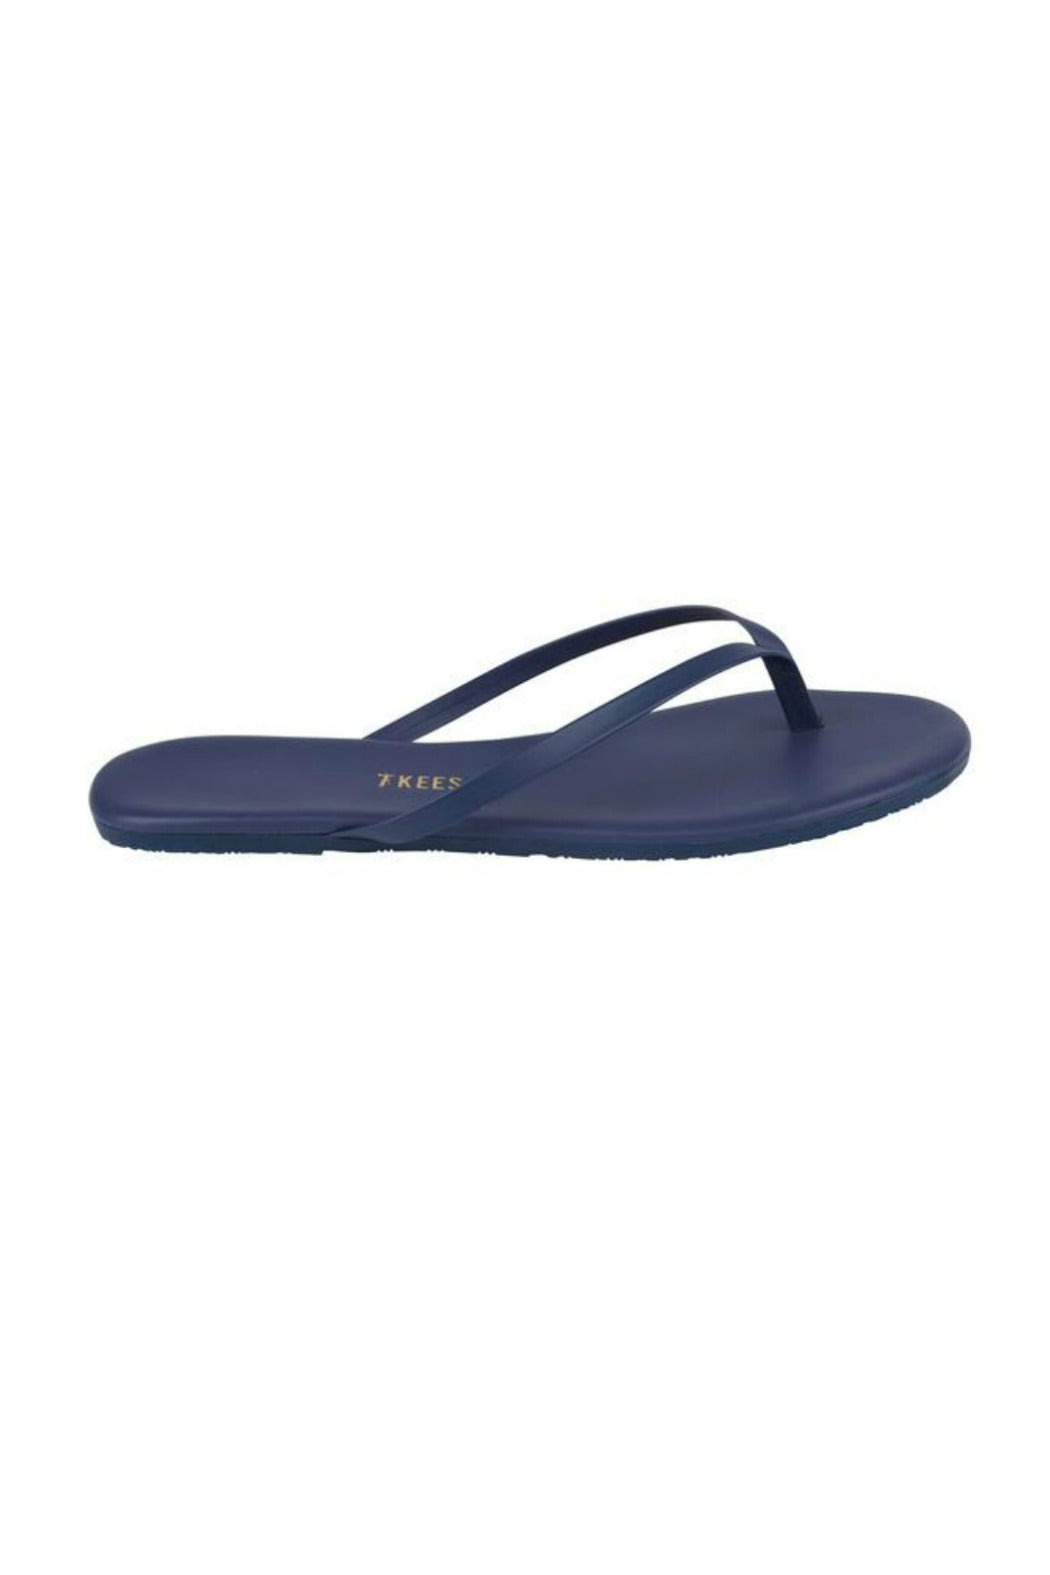 """TKEES"", Solids Sandals Blue #17"